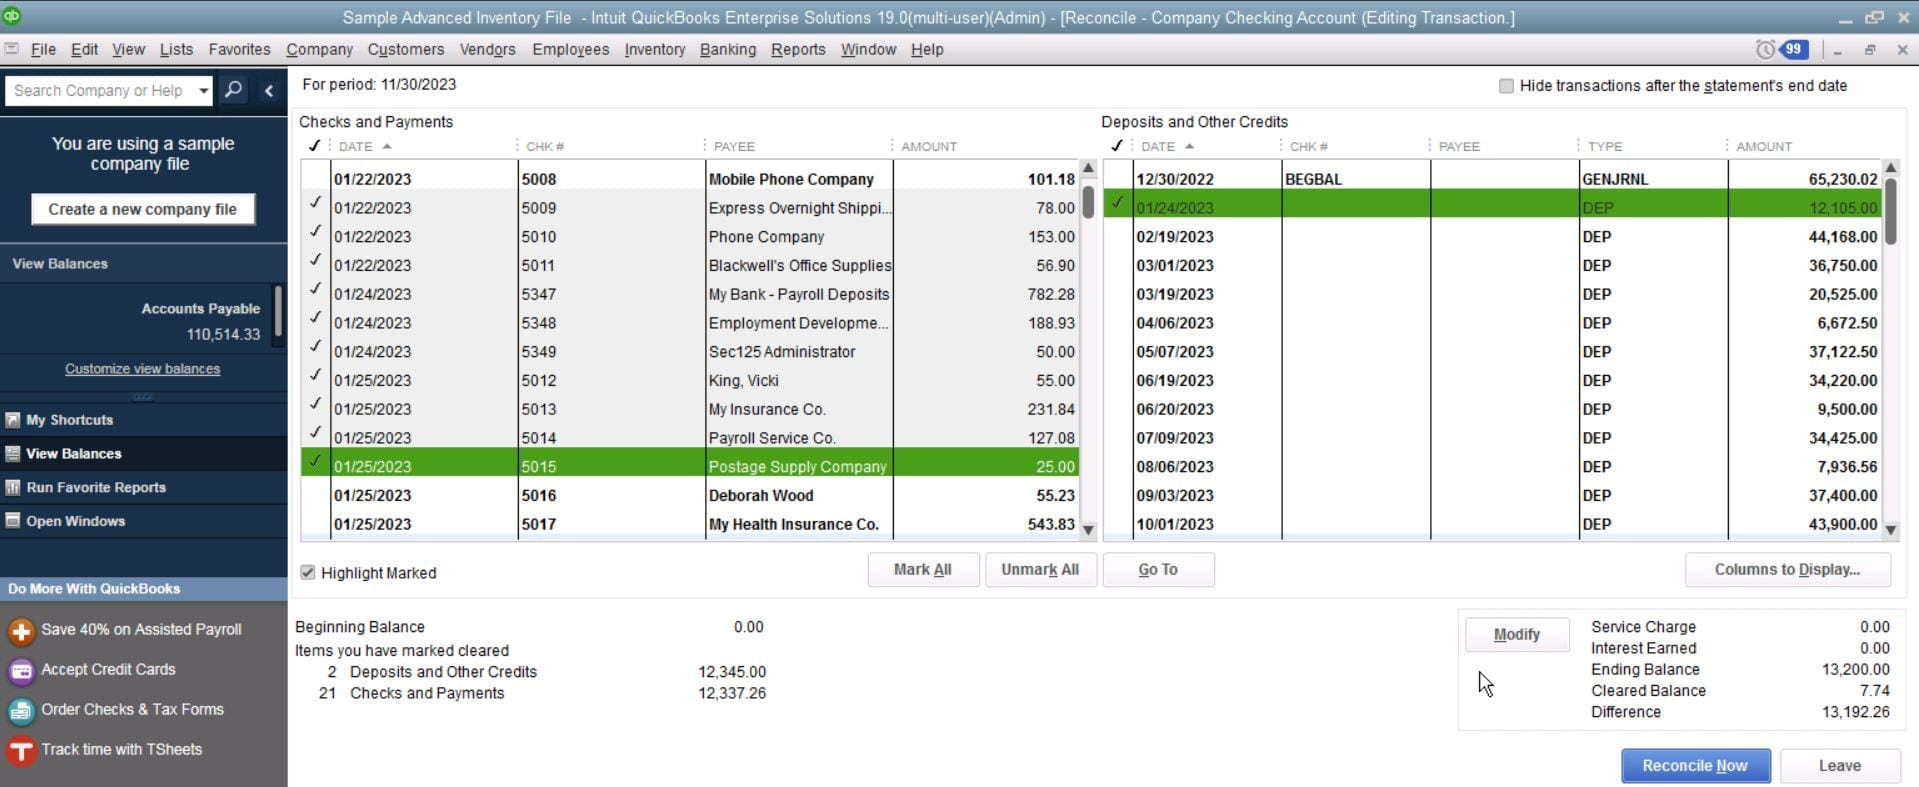 QuickBooks Enterprise Check and Payments